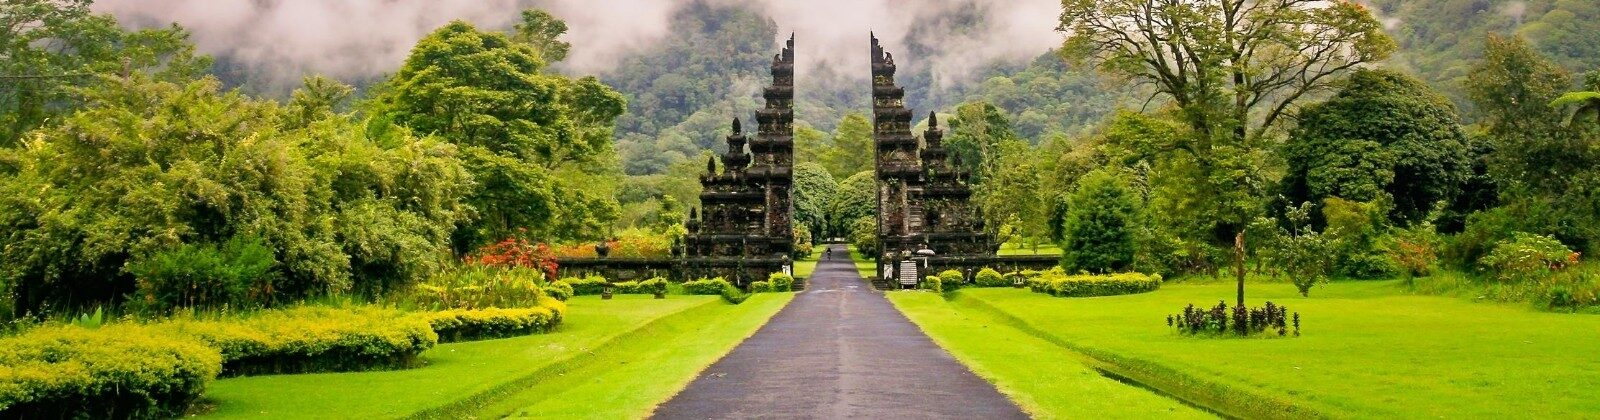 bali featured image temple gate